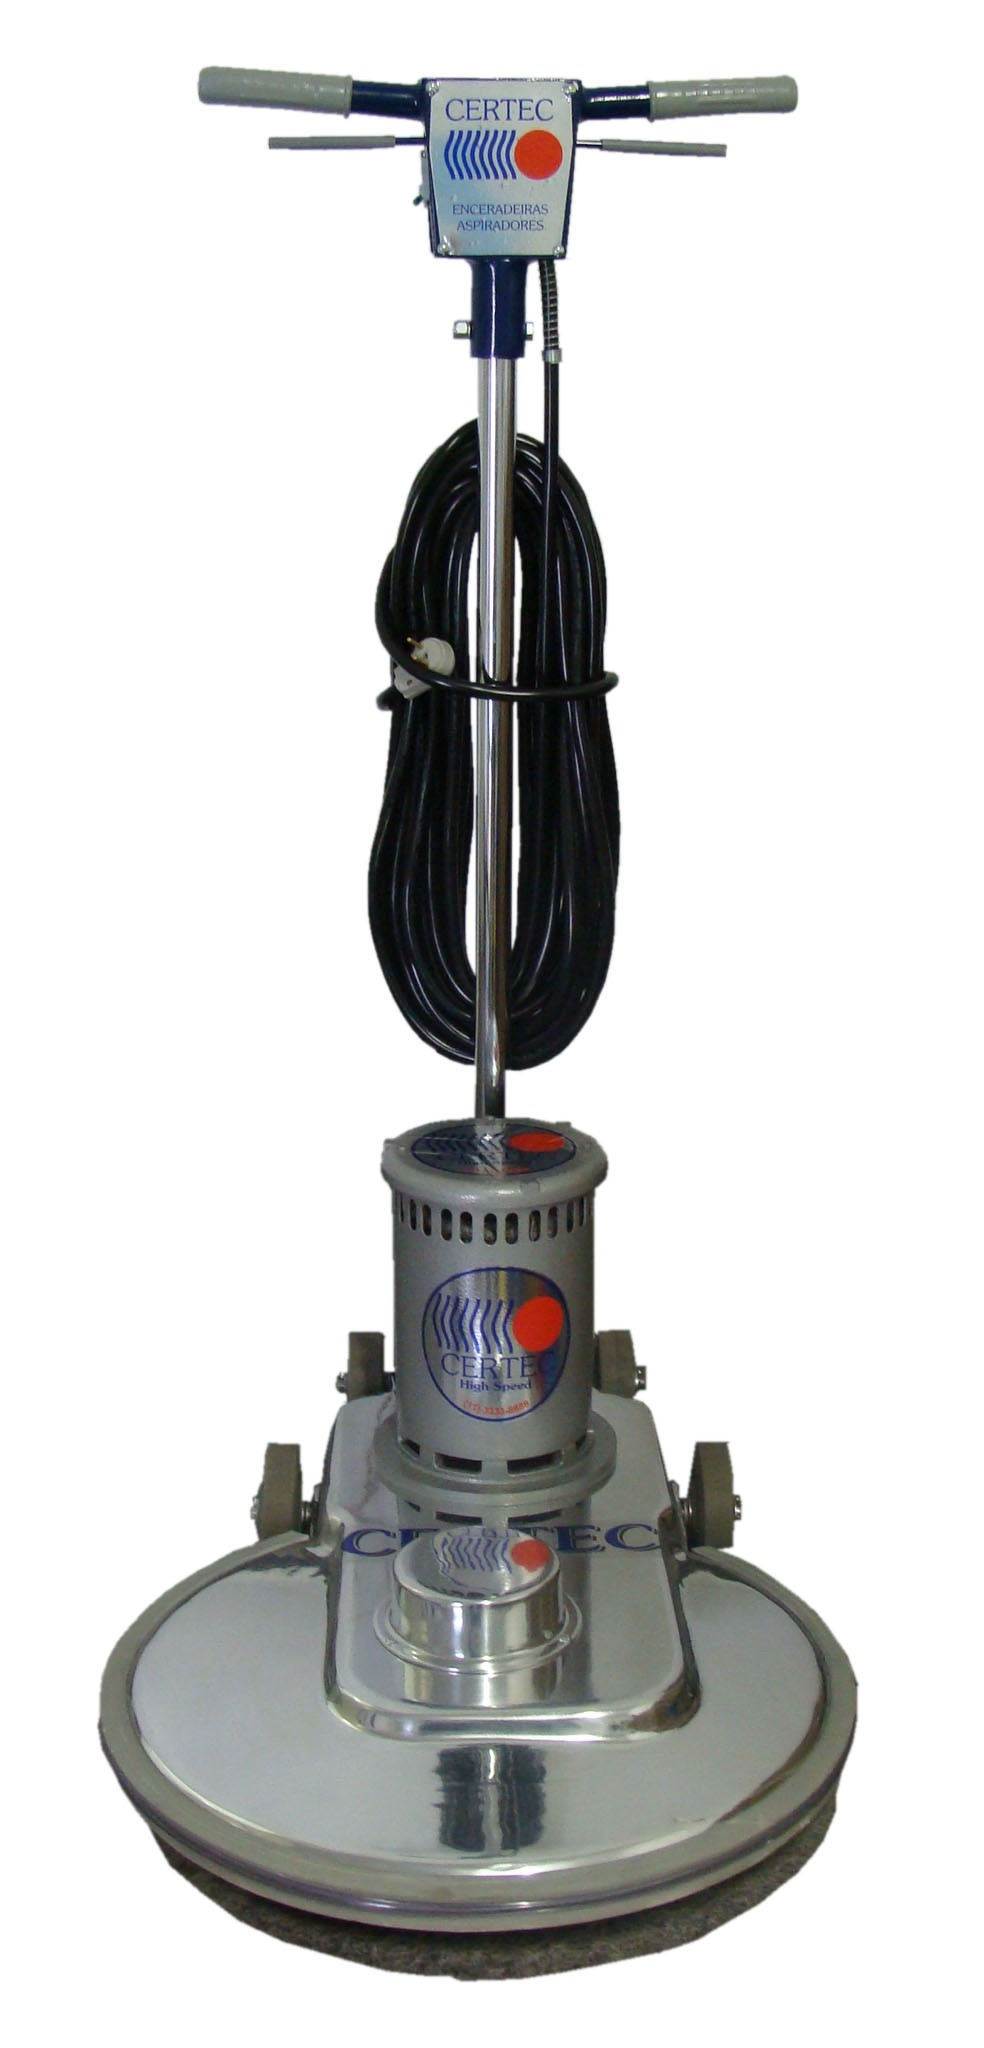 POLIDORA UHS HIGH SPEED 220V 2400 RPM CERTEC